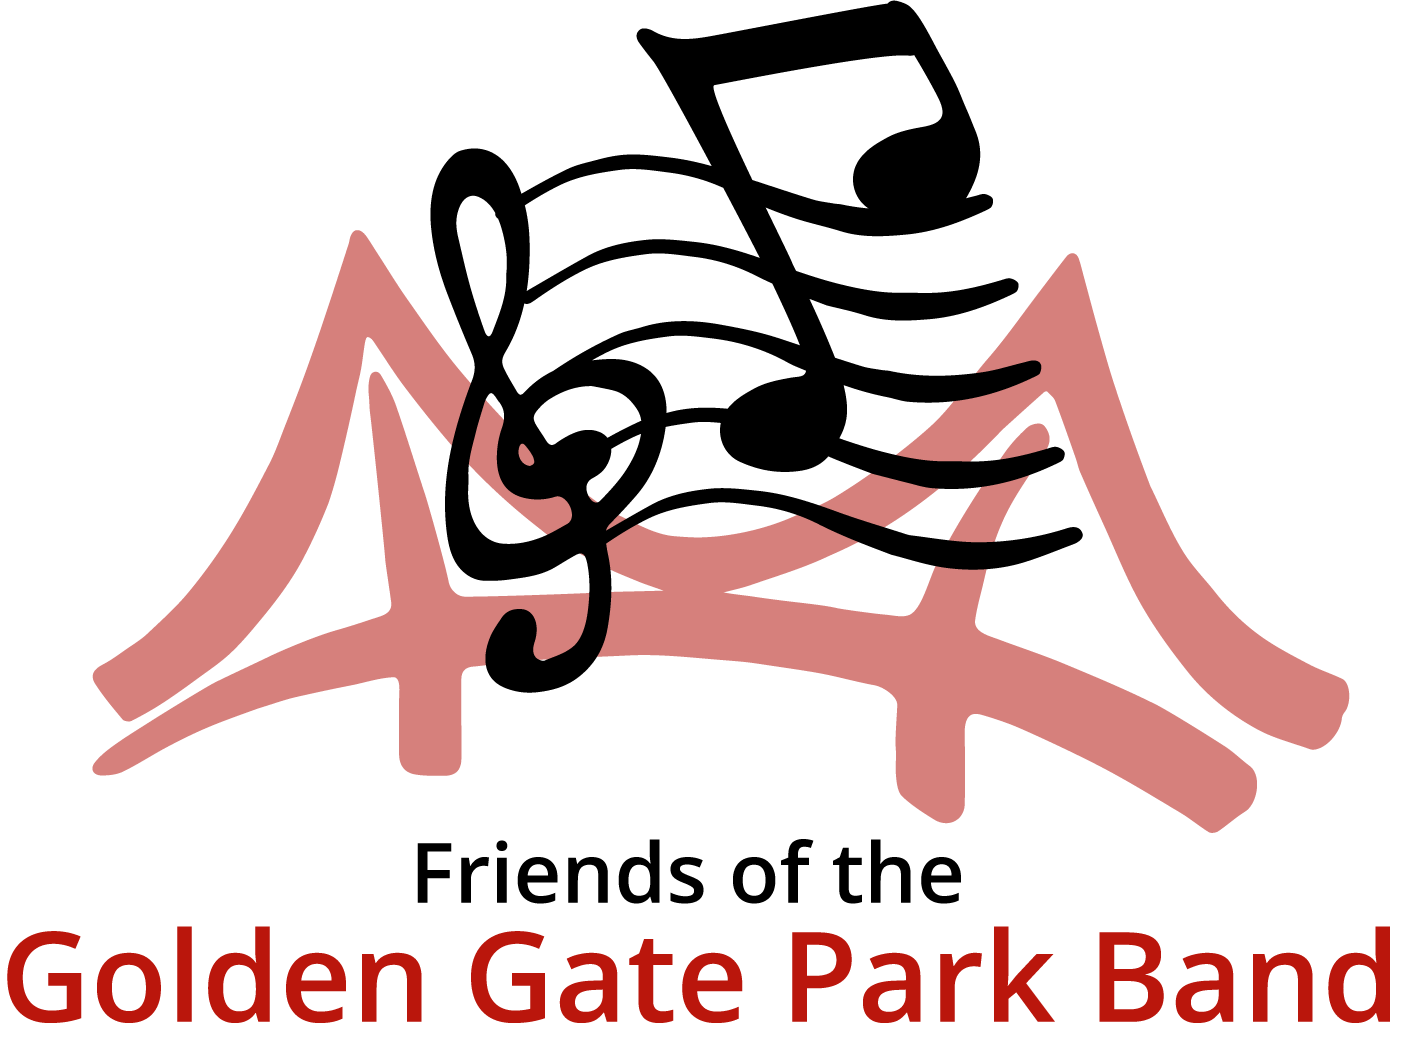 Friends of the Golden Gate Park Band